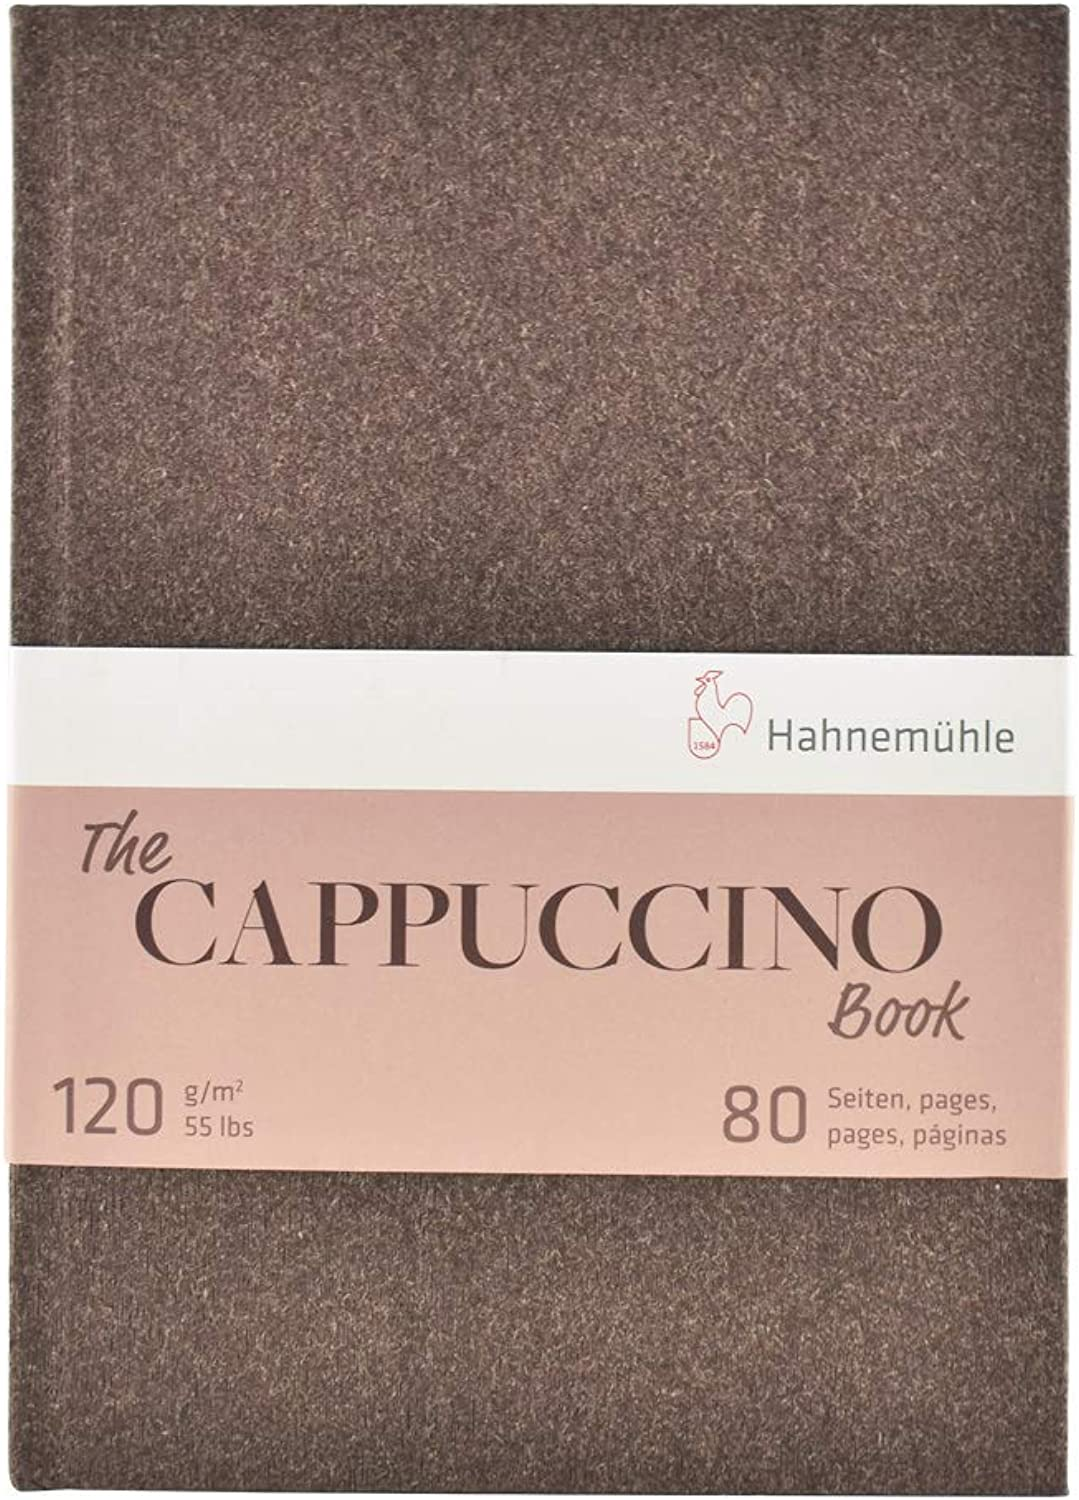 Hahnemuhle, Sketch Book, Cappuccino, A5 (8.3x5.8 inches) 120gsm, 40 sheets 80 pages, Hardbound